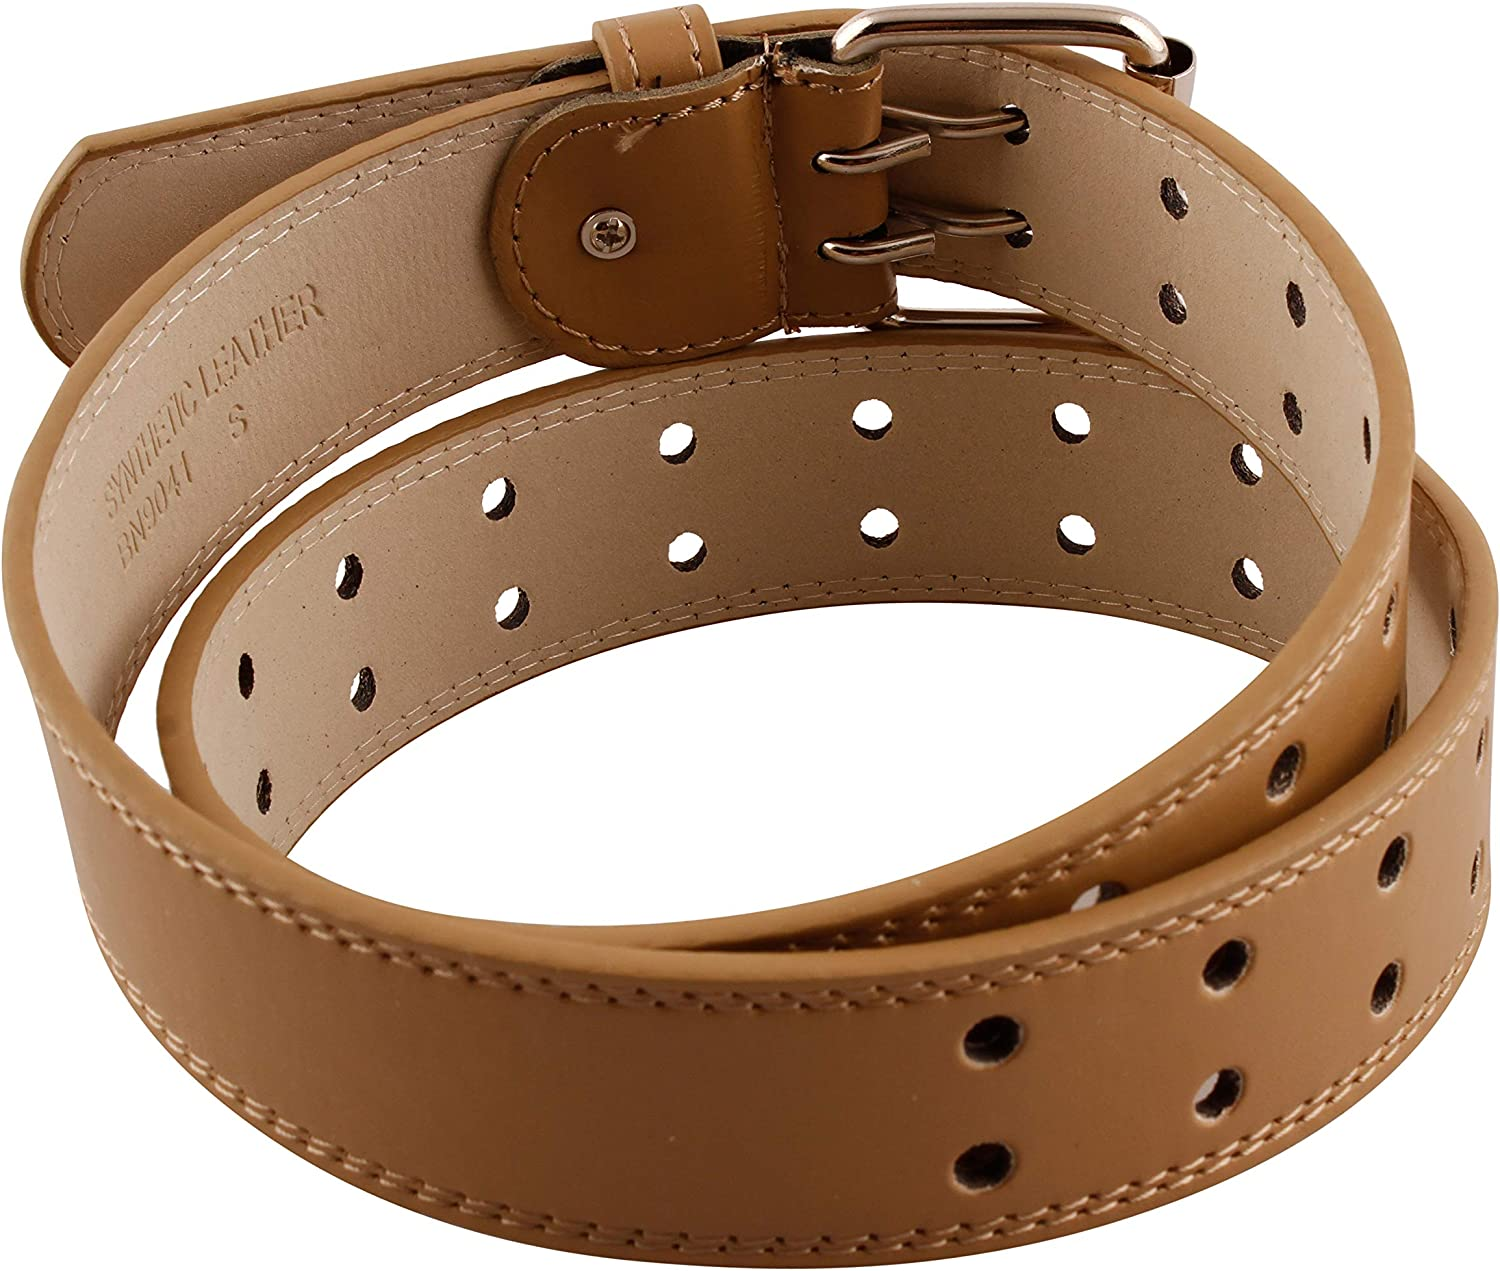 Unisex Two-Hole Genuine Leather Belt Up to 4XL Available GL083